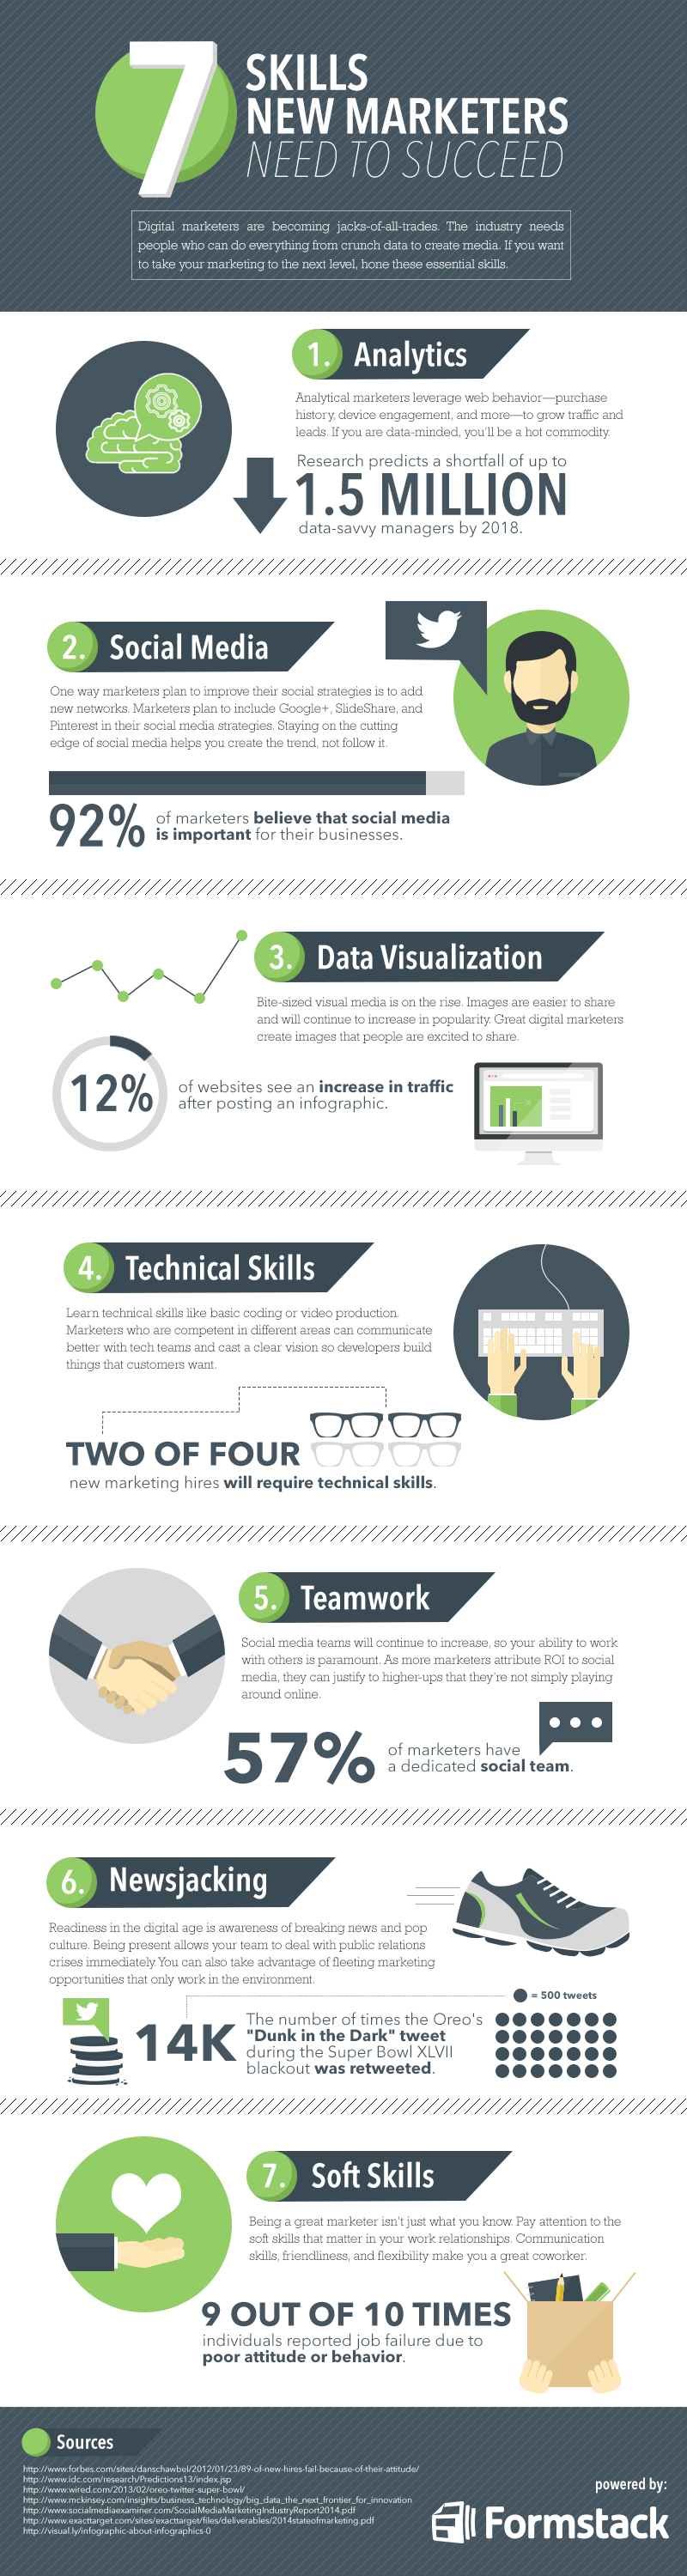 7 skills new marketers need formstack